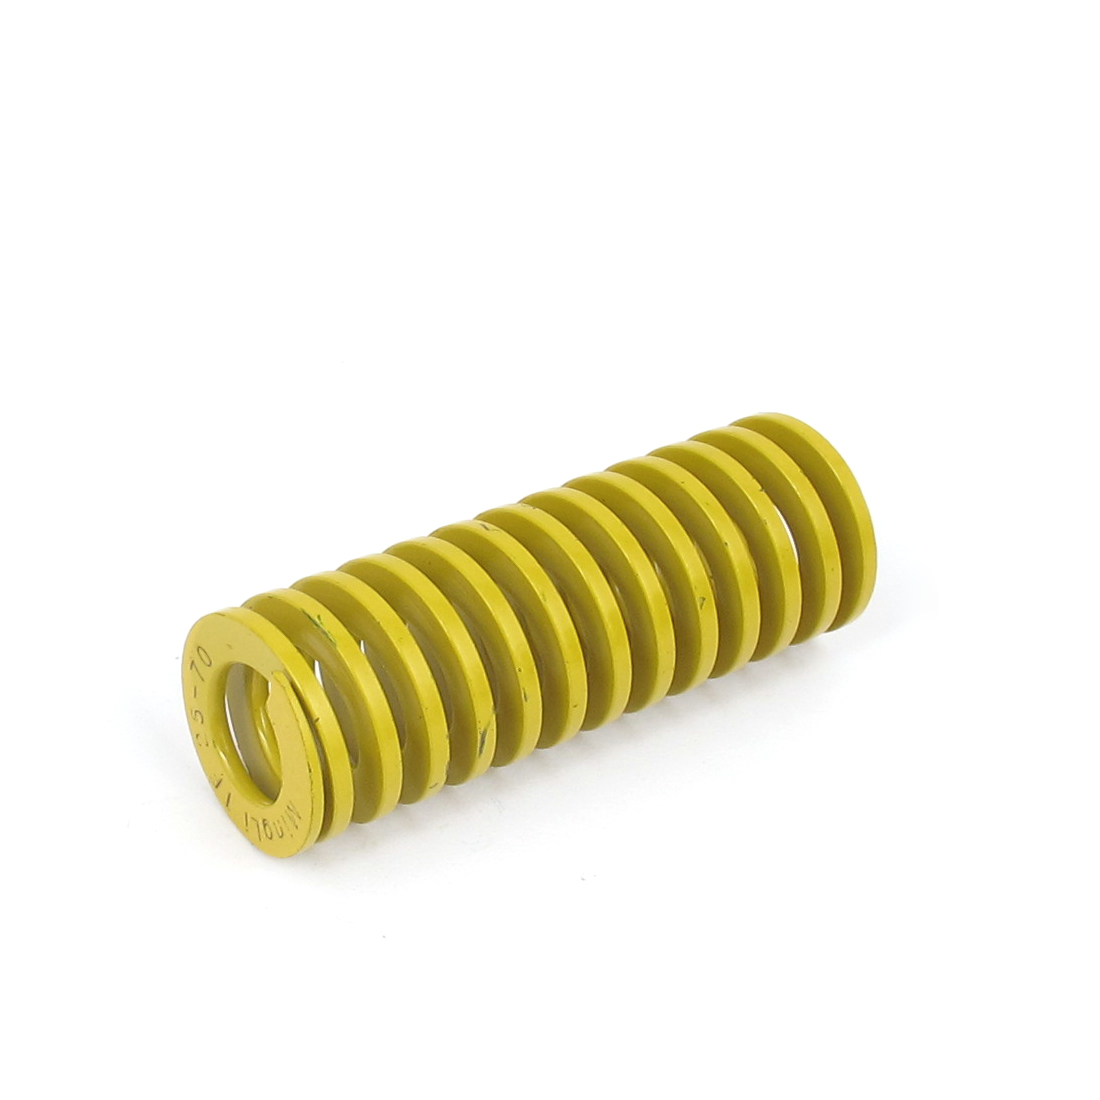 25mm OD 70mm Long Lightest Load Spiral Stamping Compression Die Spring Yellow